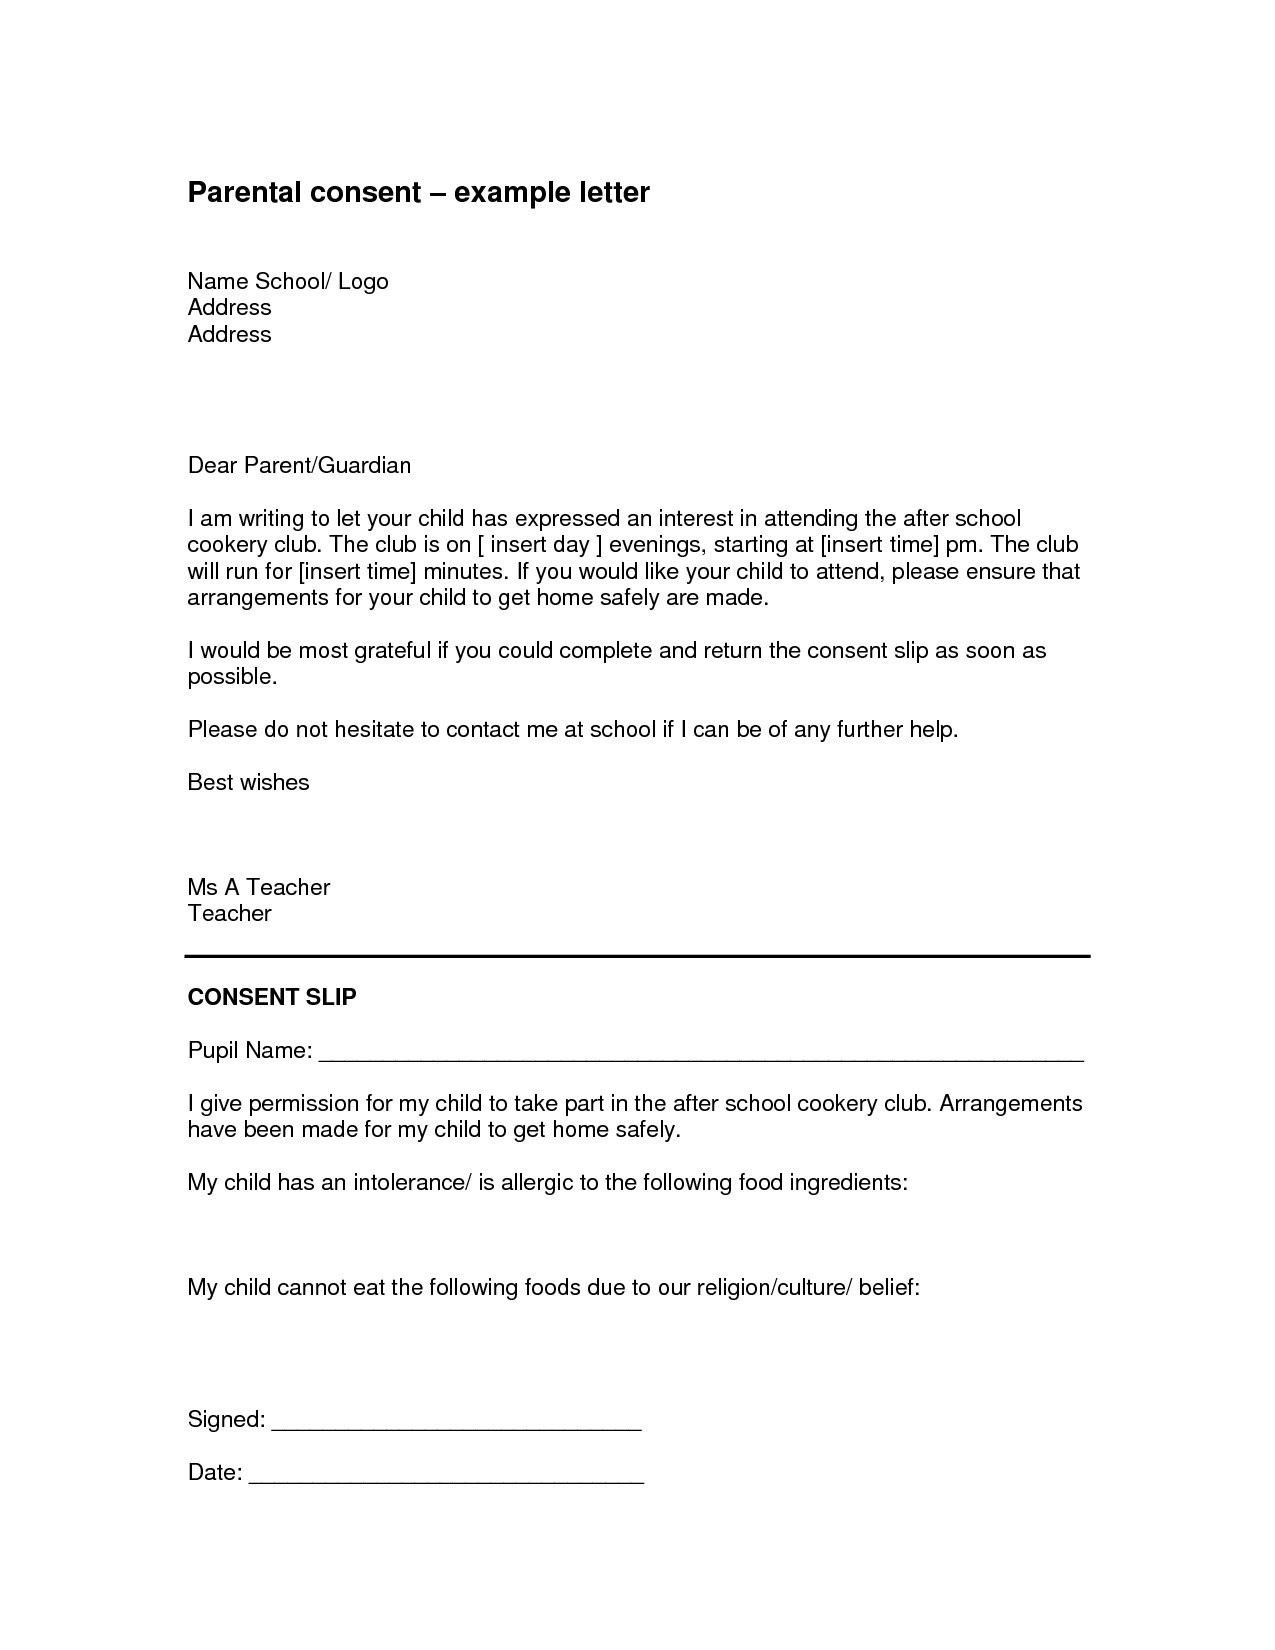 permission to travel letter template example-Permission Letter to Travel Save Sample Permission to Travel Letter Best Consent Letter format Best 16-r